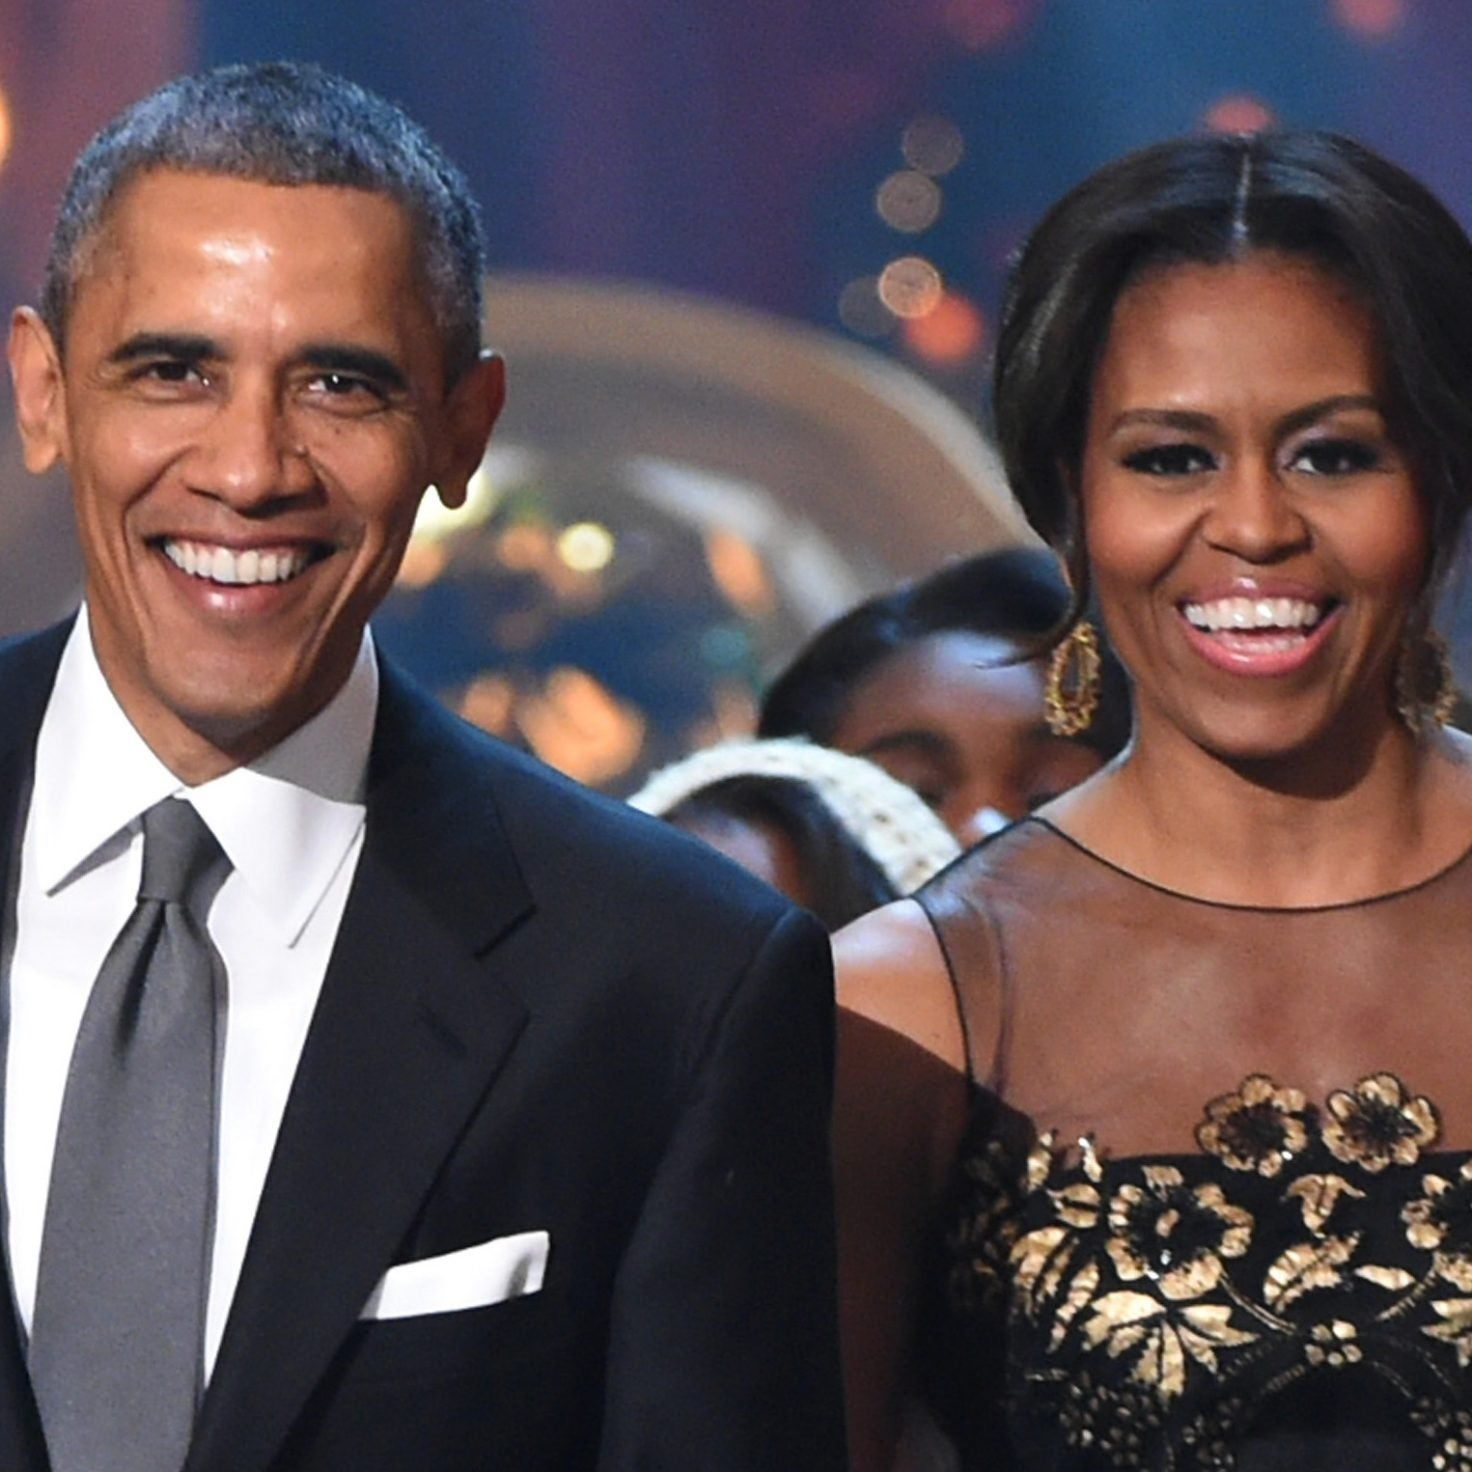 Michelle Obama Wishes Barack Obama, AKA 'My Favorite Guy,' A Happy 59th Birthday